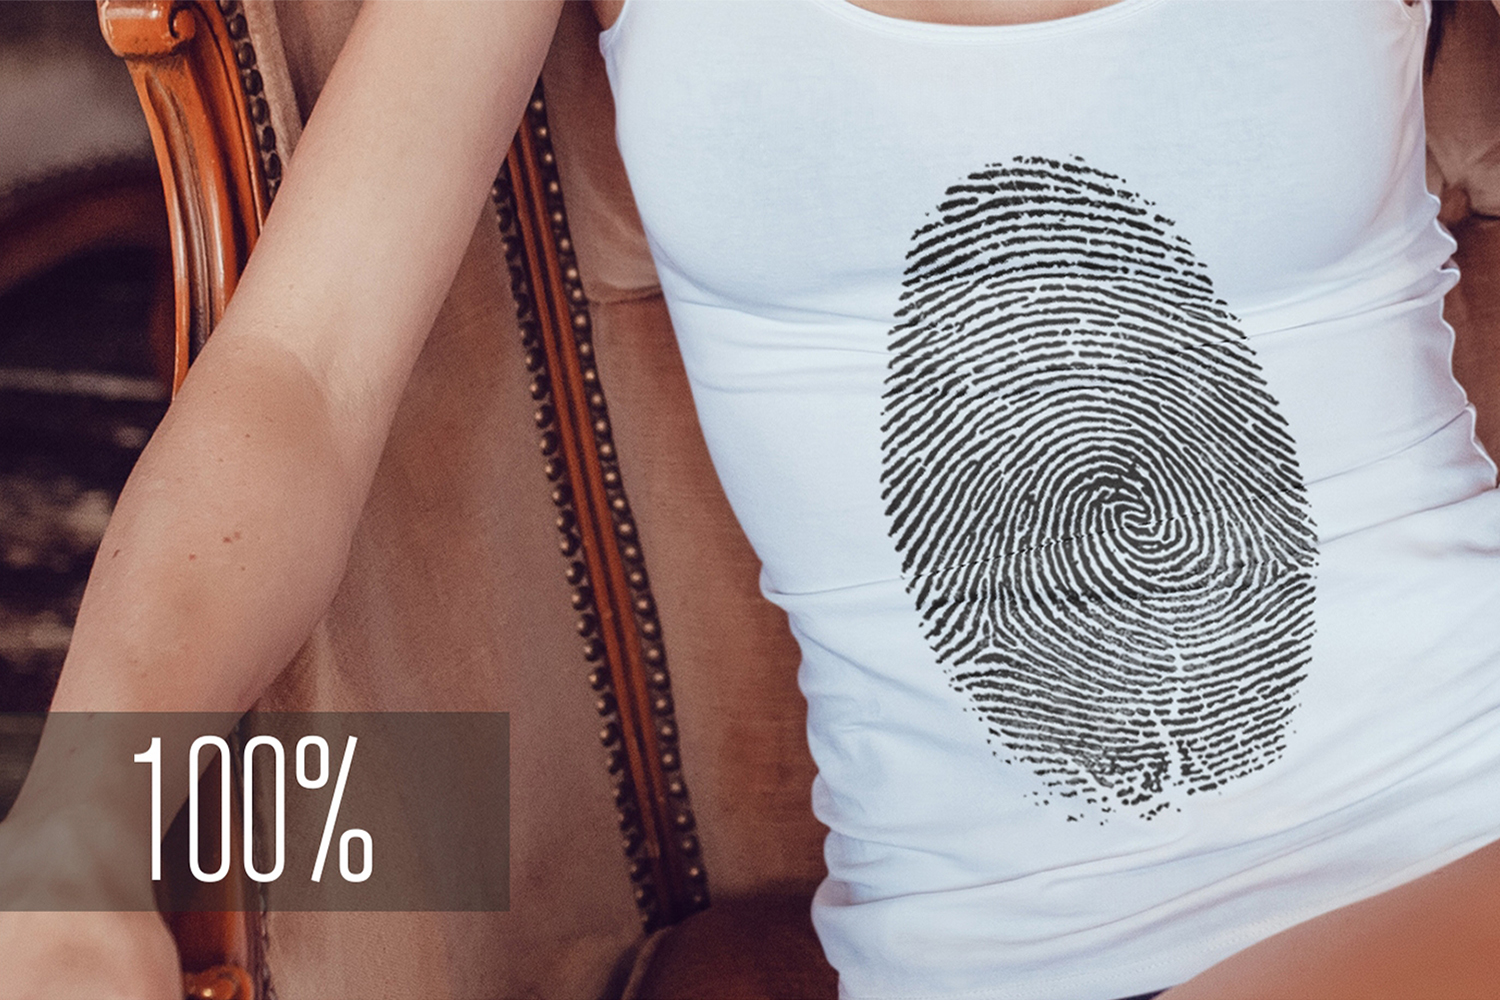 Female Tank-Top Mock-Up Vol.2 example image 5